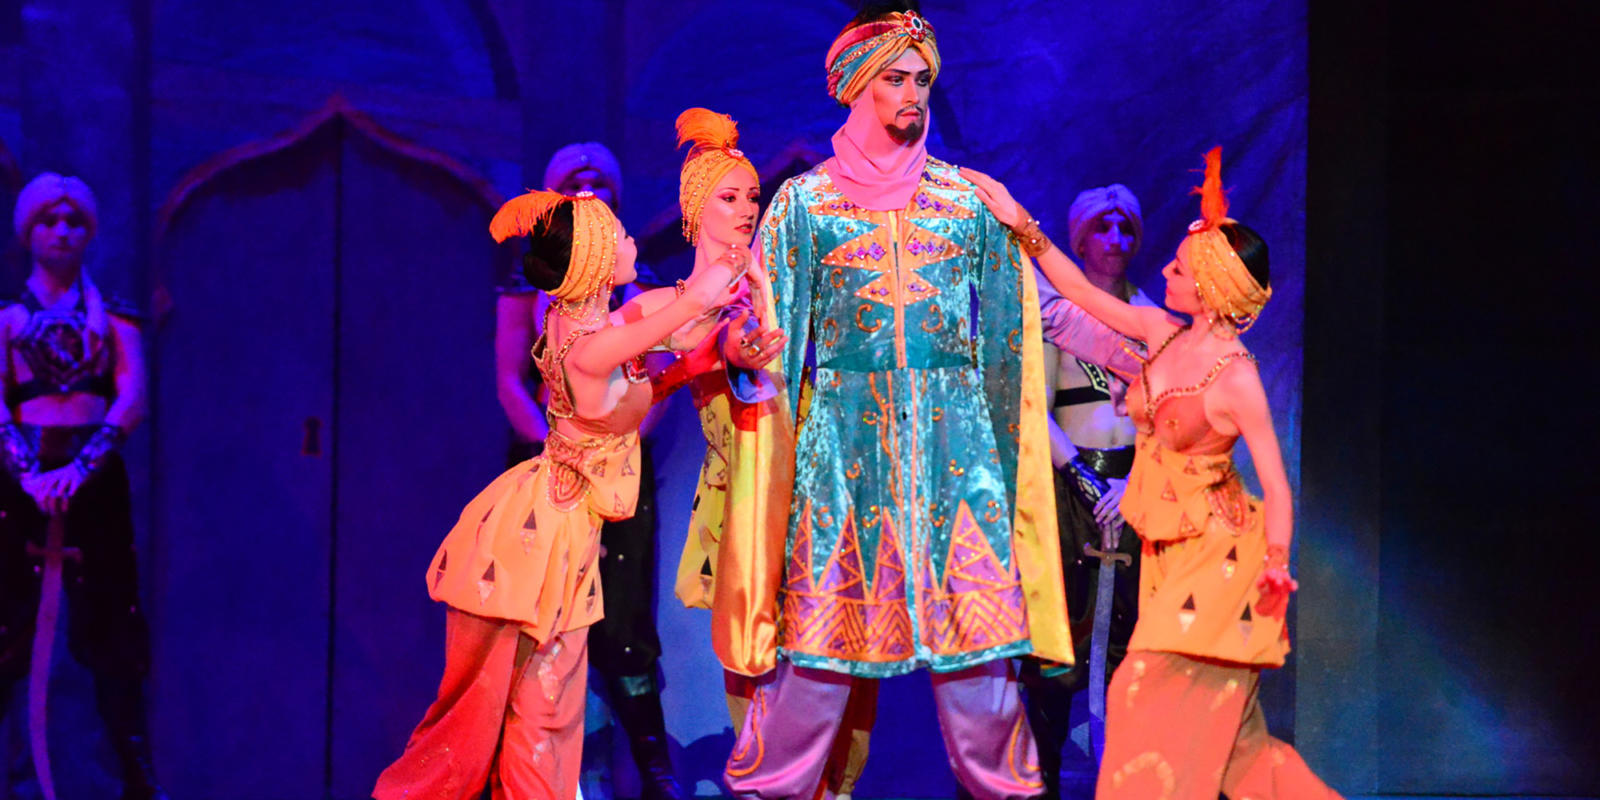 Nurzhan Baybusinov as Shahriar in Scheherazade. Photo by the press office of the Abay KSTOB